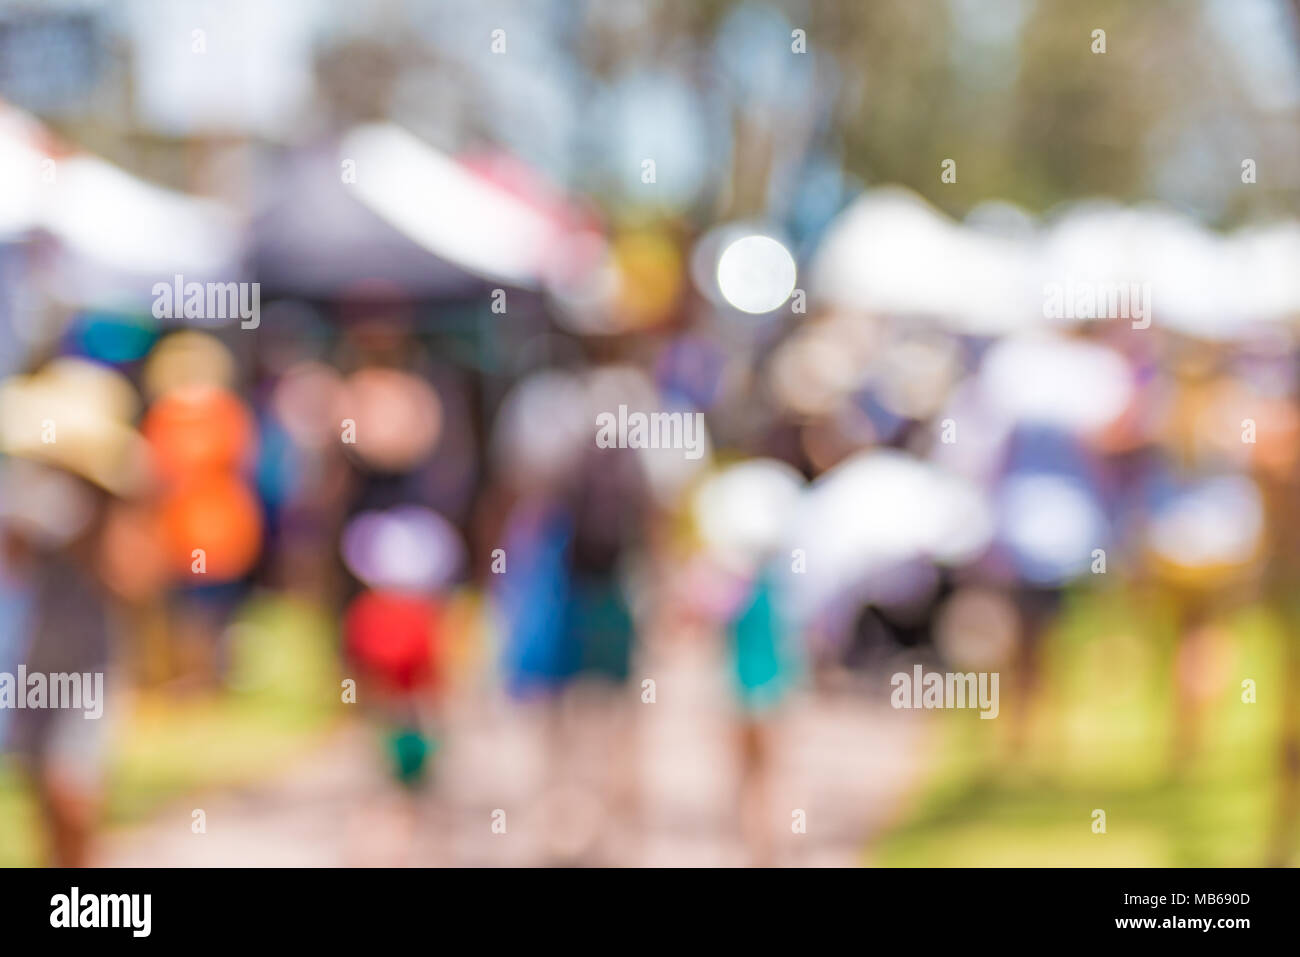 Blur abstract people background, unrecognizable silhouettes of people walking on outdoor festival fair. Food stall at day festival for background usag Stock Photo